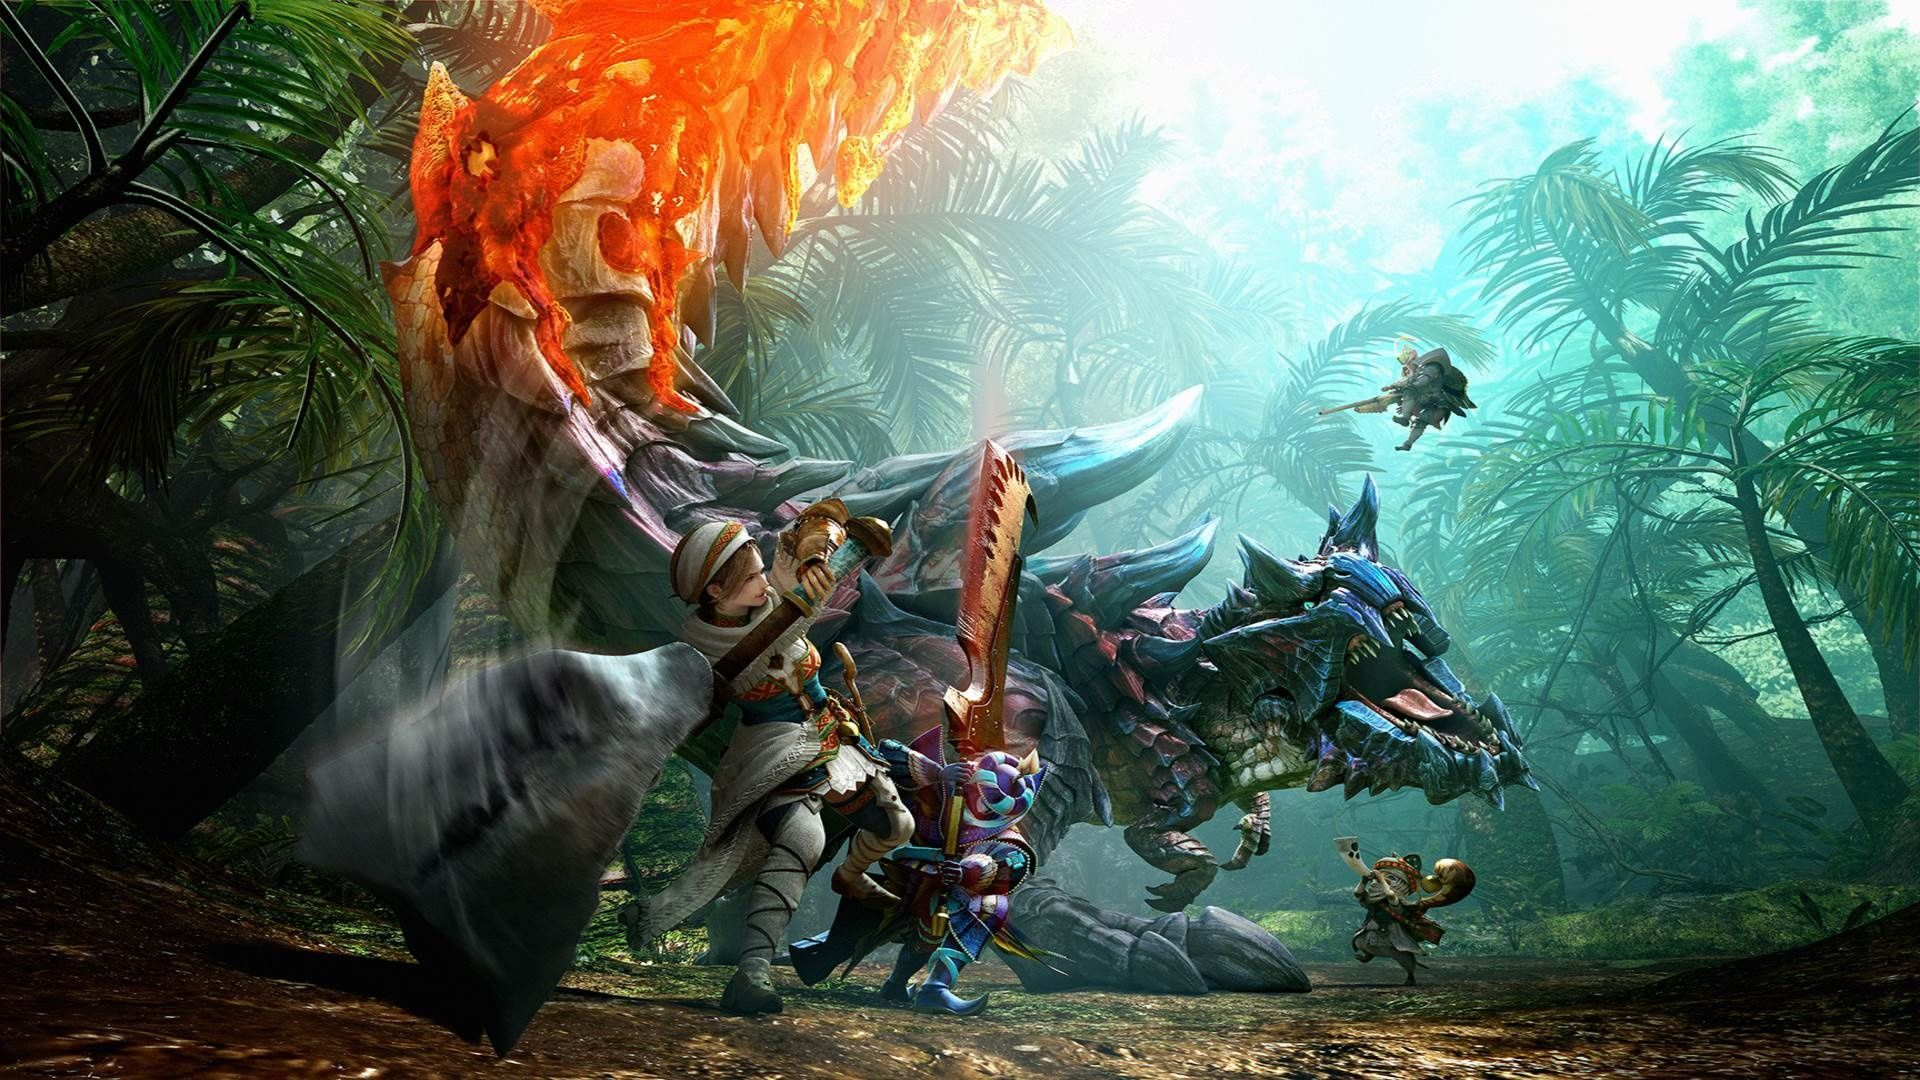 Monster Hunter Wallpapers Phone ~ Monodomo